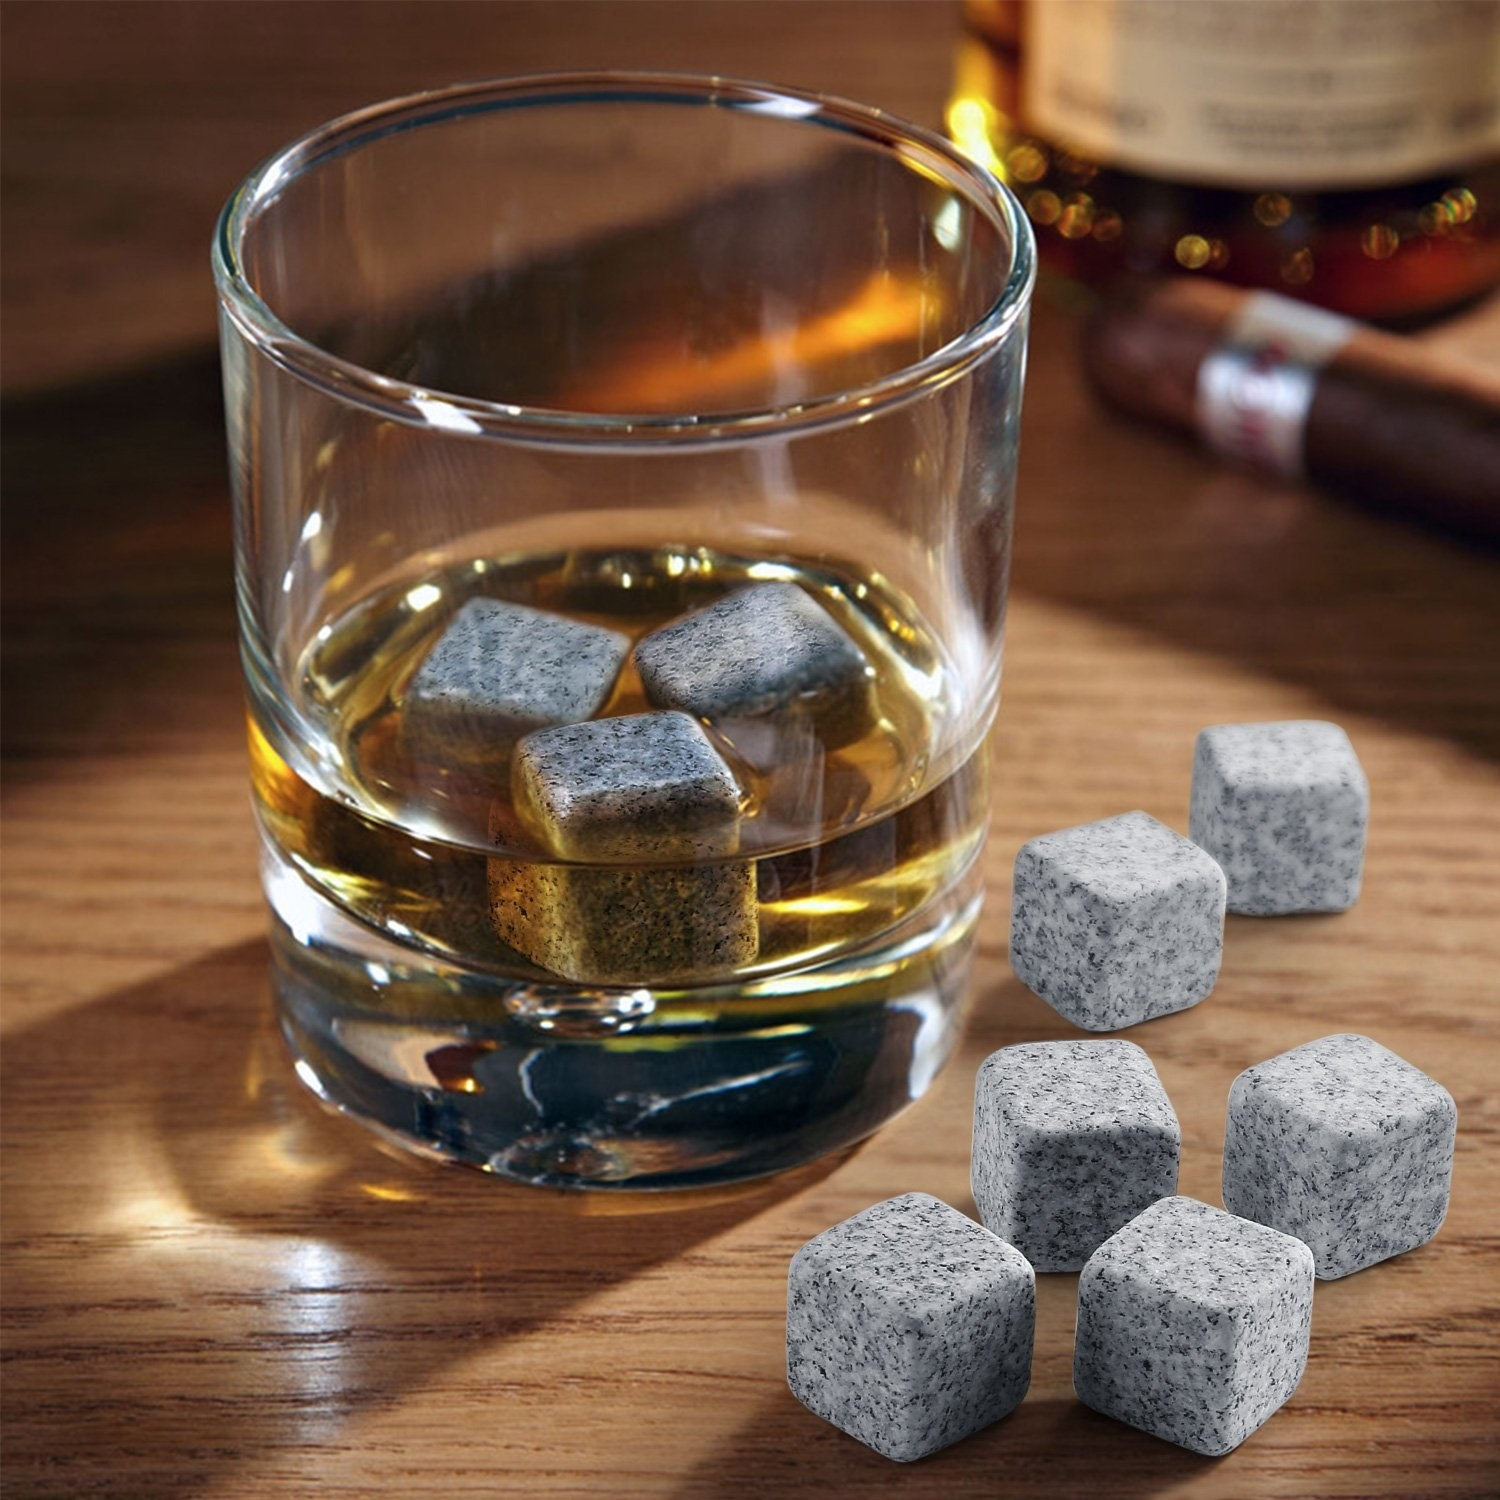 Several whiskey stones next to and inside a glass of whiskey